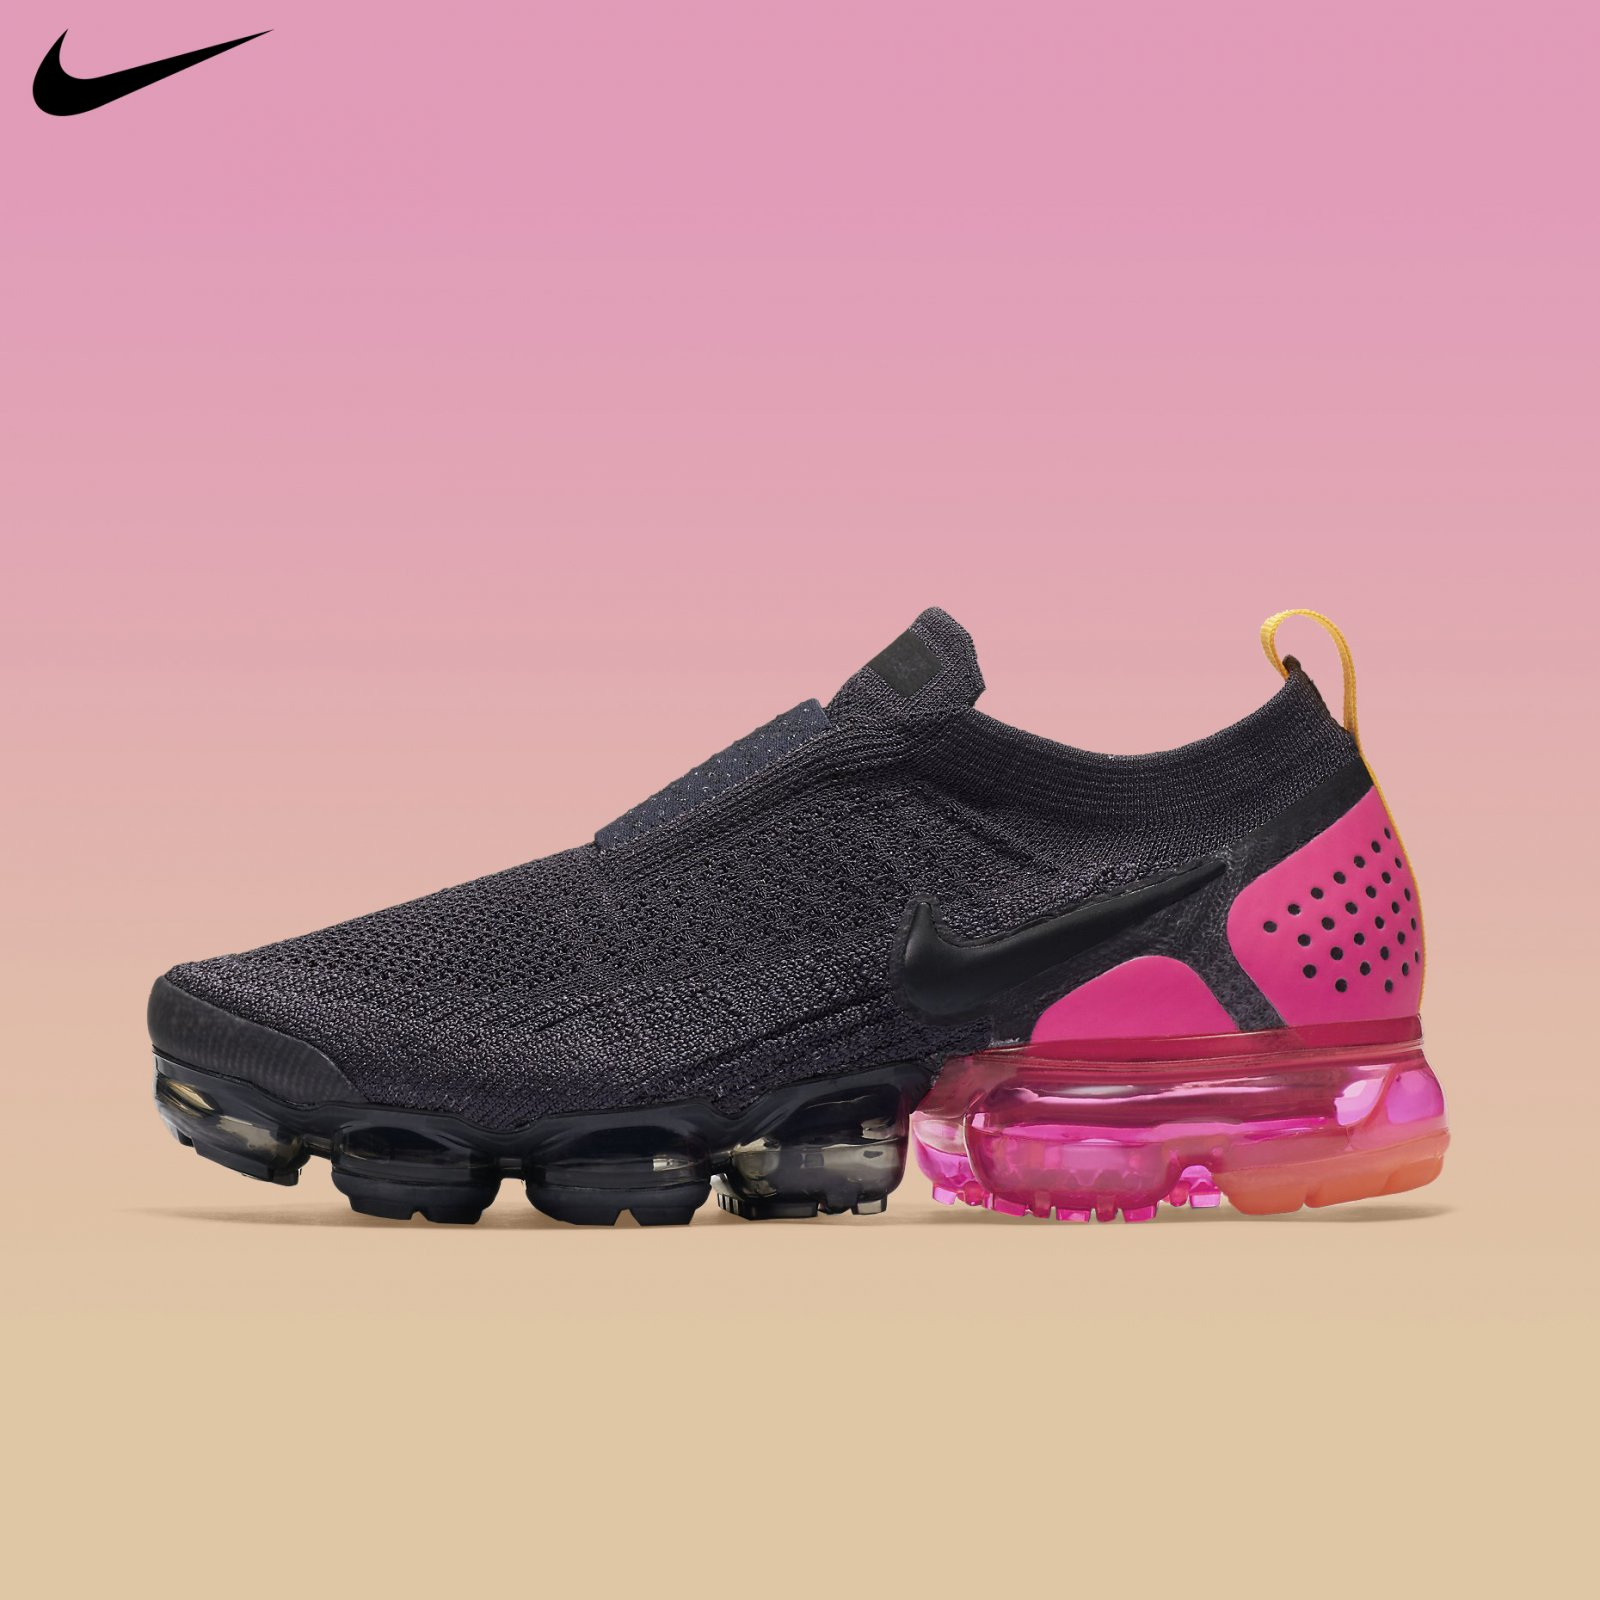 first rate d81e8 adba9 Nike Women's Air VaporMax Flyknit Moc 2 Gridiron Black Pink ...